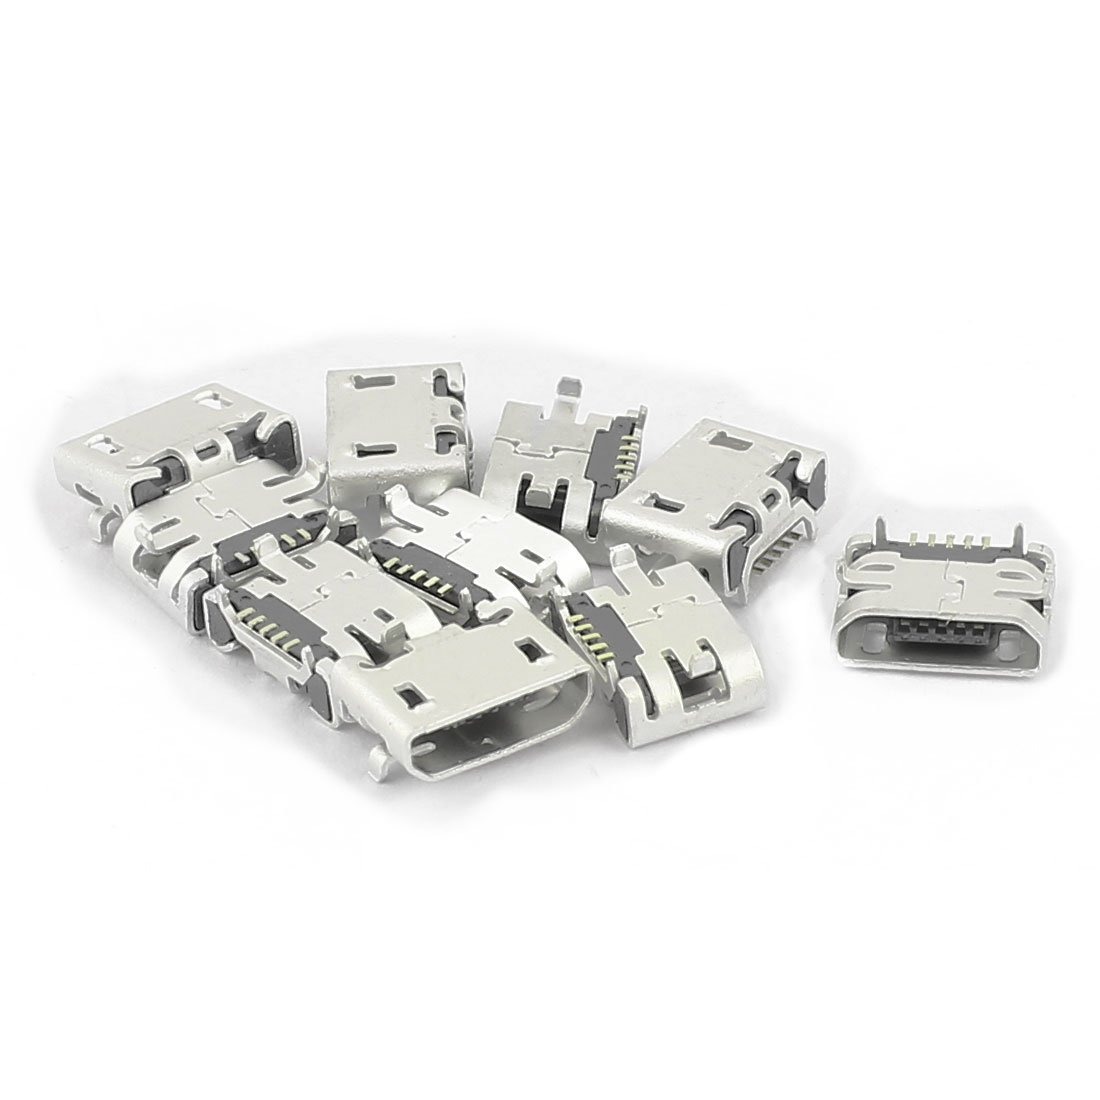 uxcell 10Pcs Type B Micro USB 5 Pin Female Jack Port Socket Connector Adapter for Phone